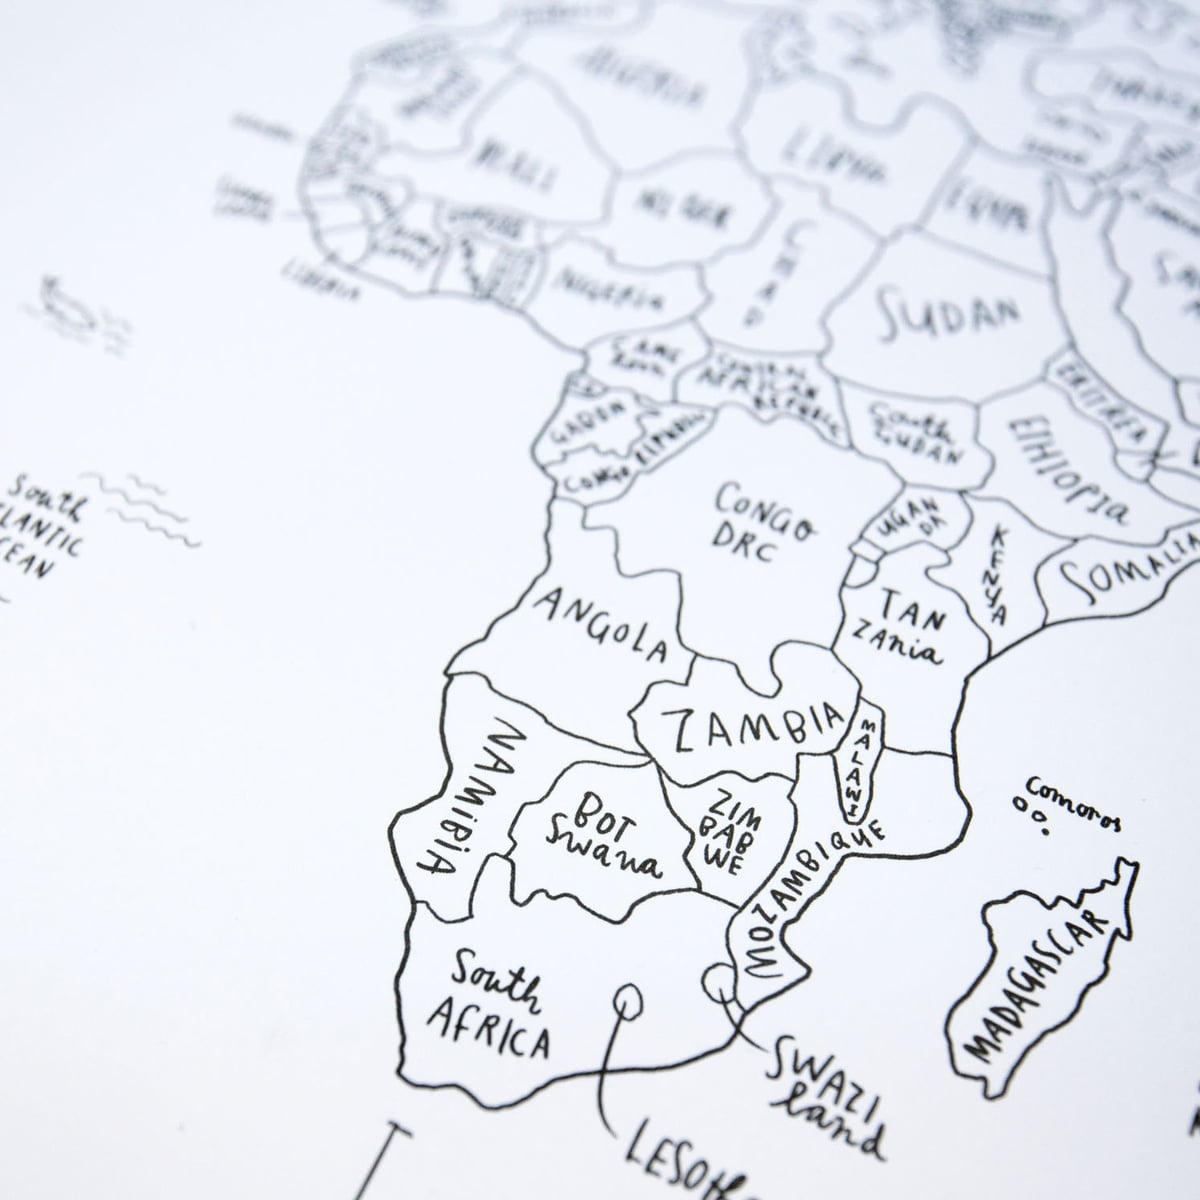 Sketch map world map by awesome maps shop awesome maps hand lettered world map sketch map gumiabroncs Choice Image